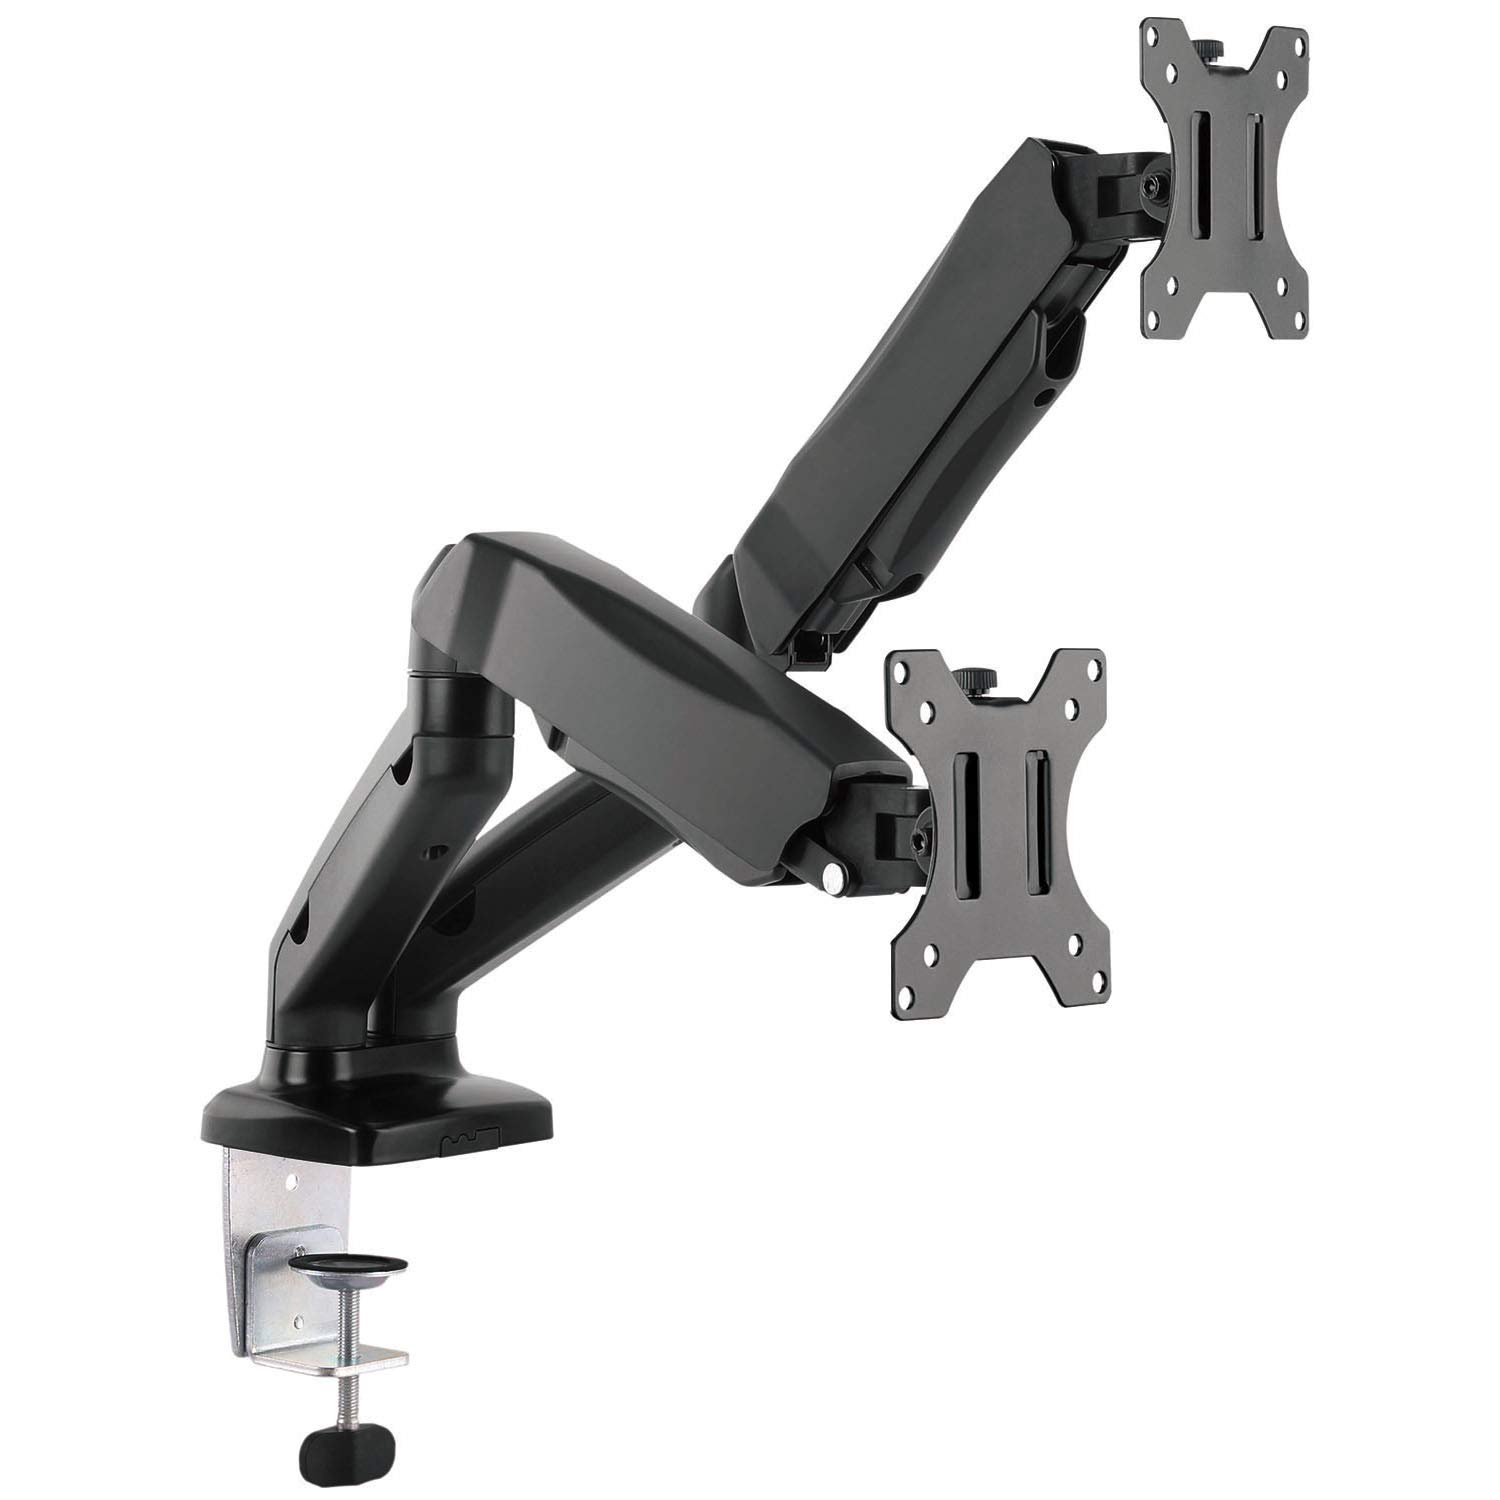 "WALI Dual LCD Monitor Fully Adjustable Gas Spring Desk Mount Fit Two Screens VESA up to 27"", 14.3 lbs. Weight Capacity per Arm (GSM002), Black"